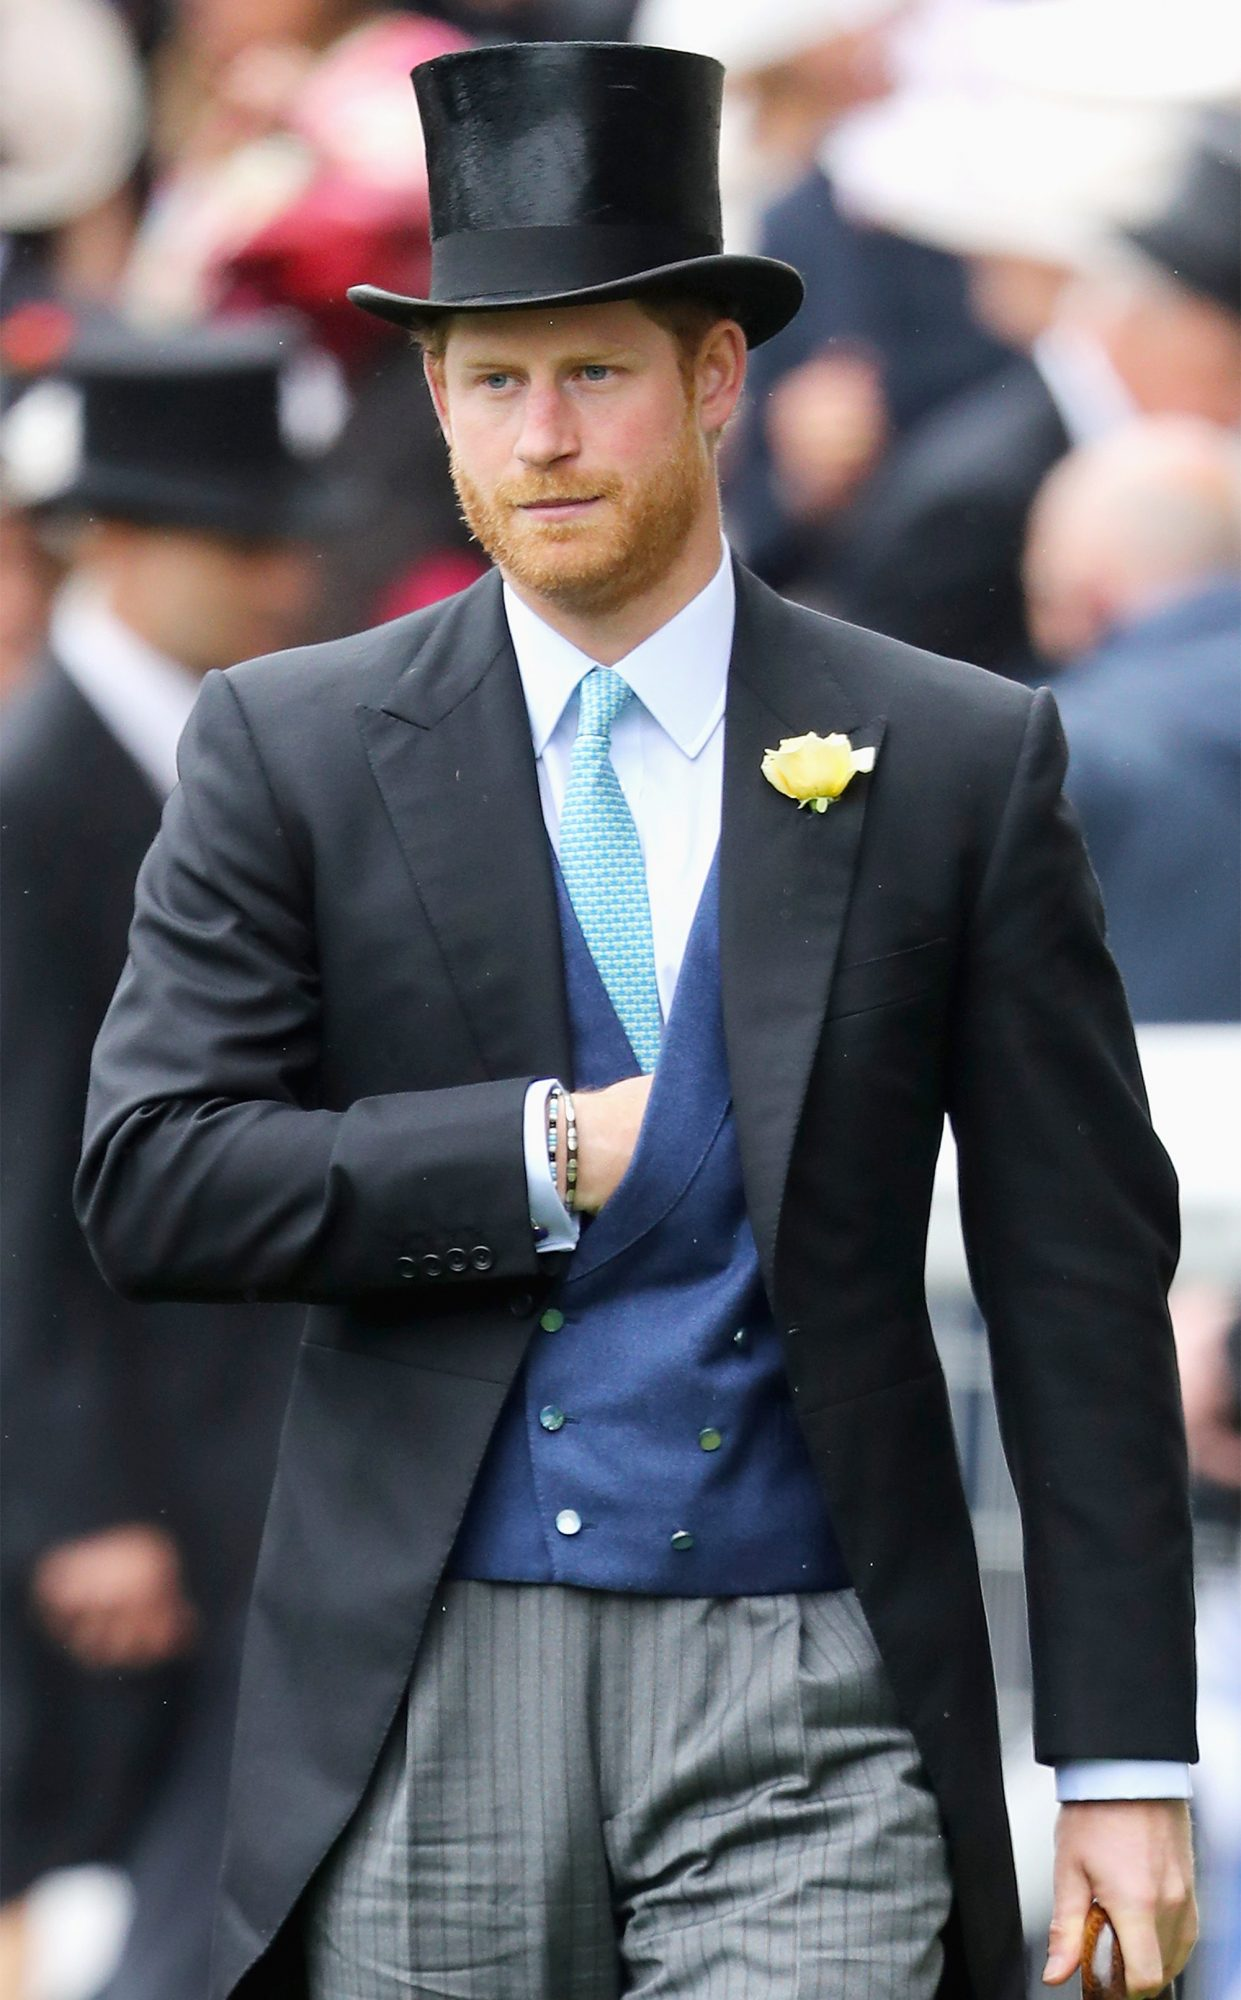 Prince Harry Wearing a Top Hat and Tails Will Make Your Day